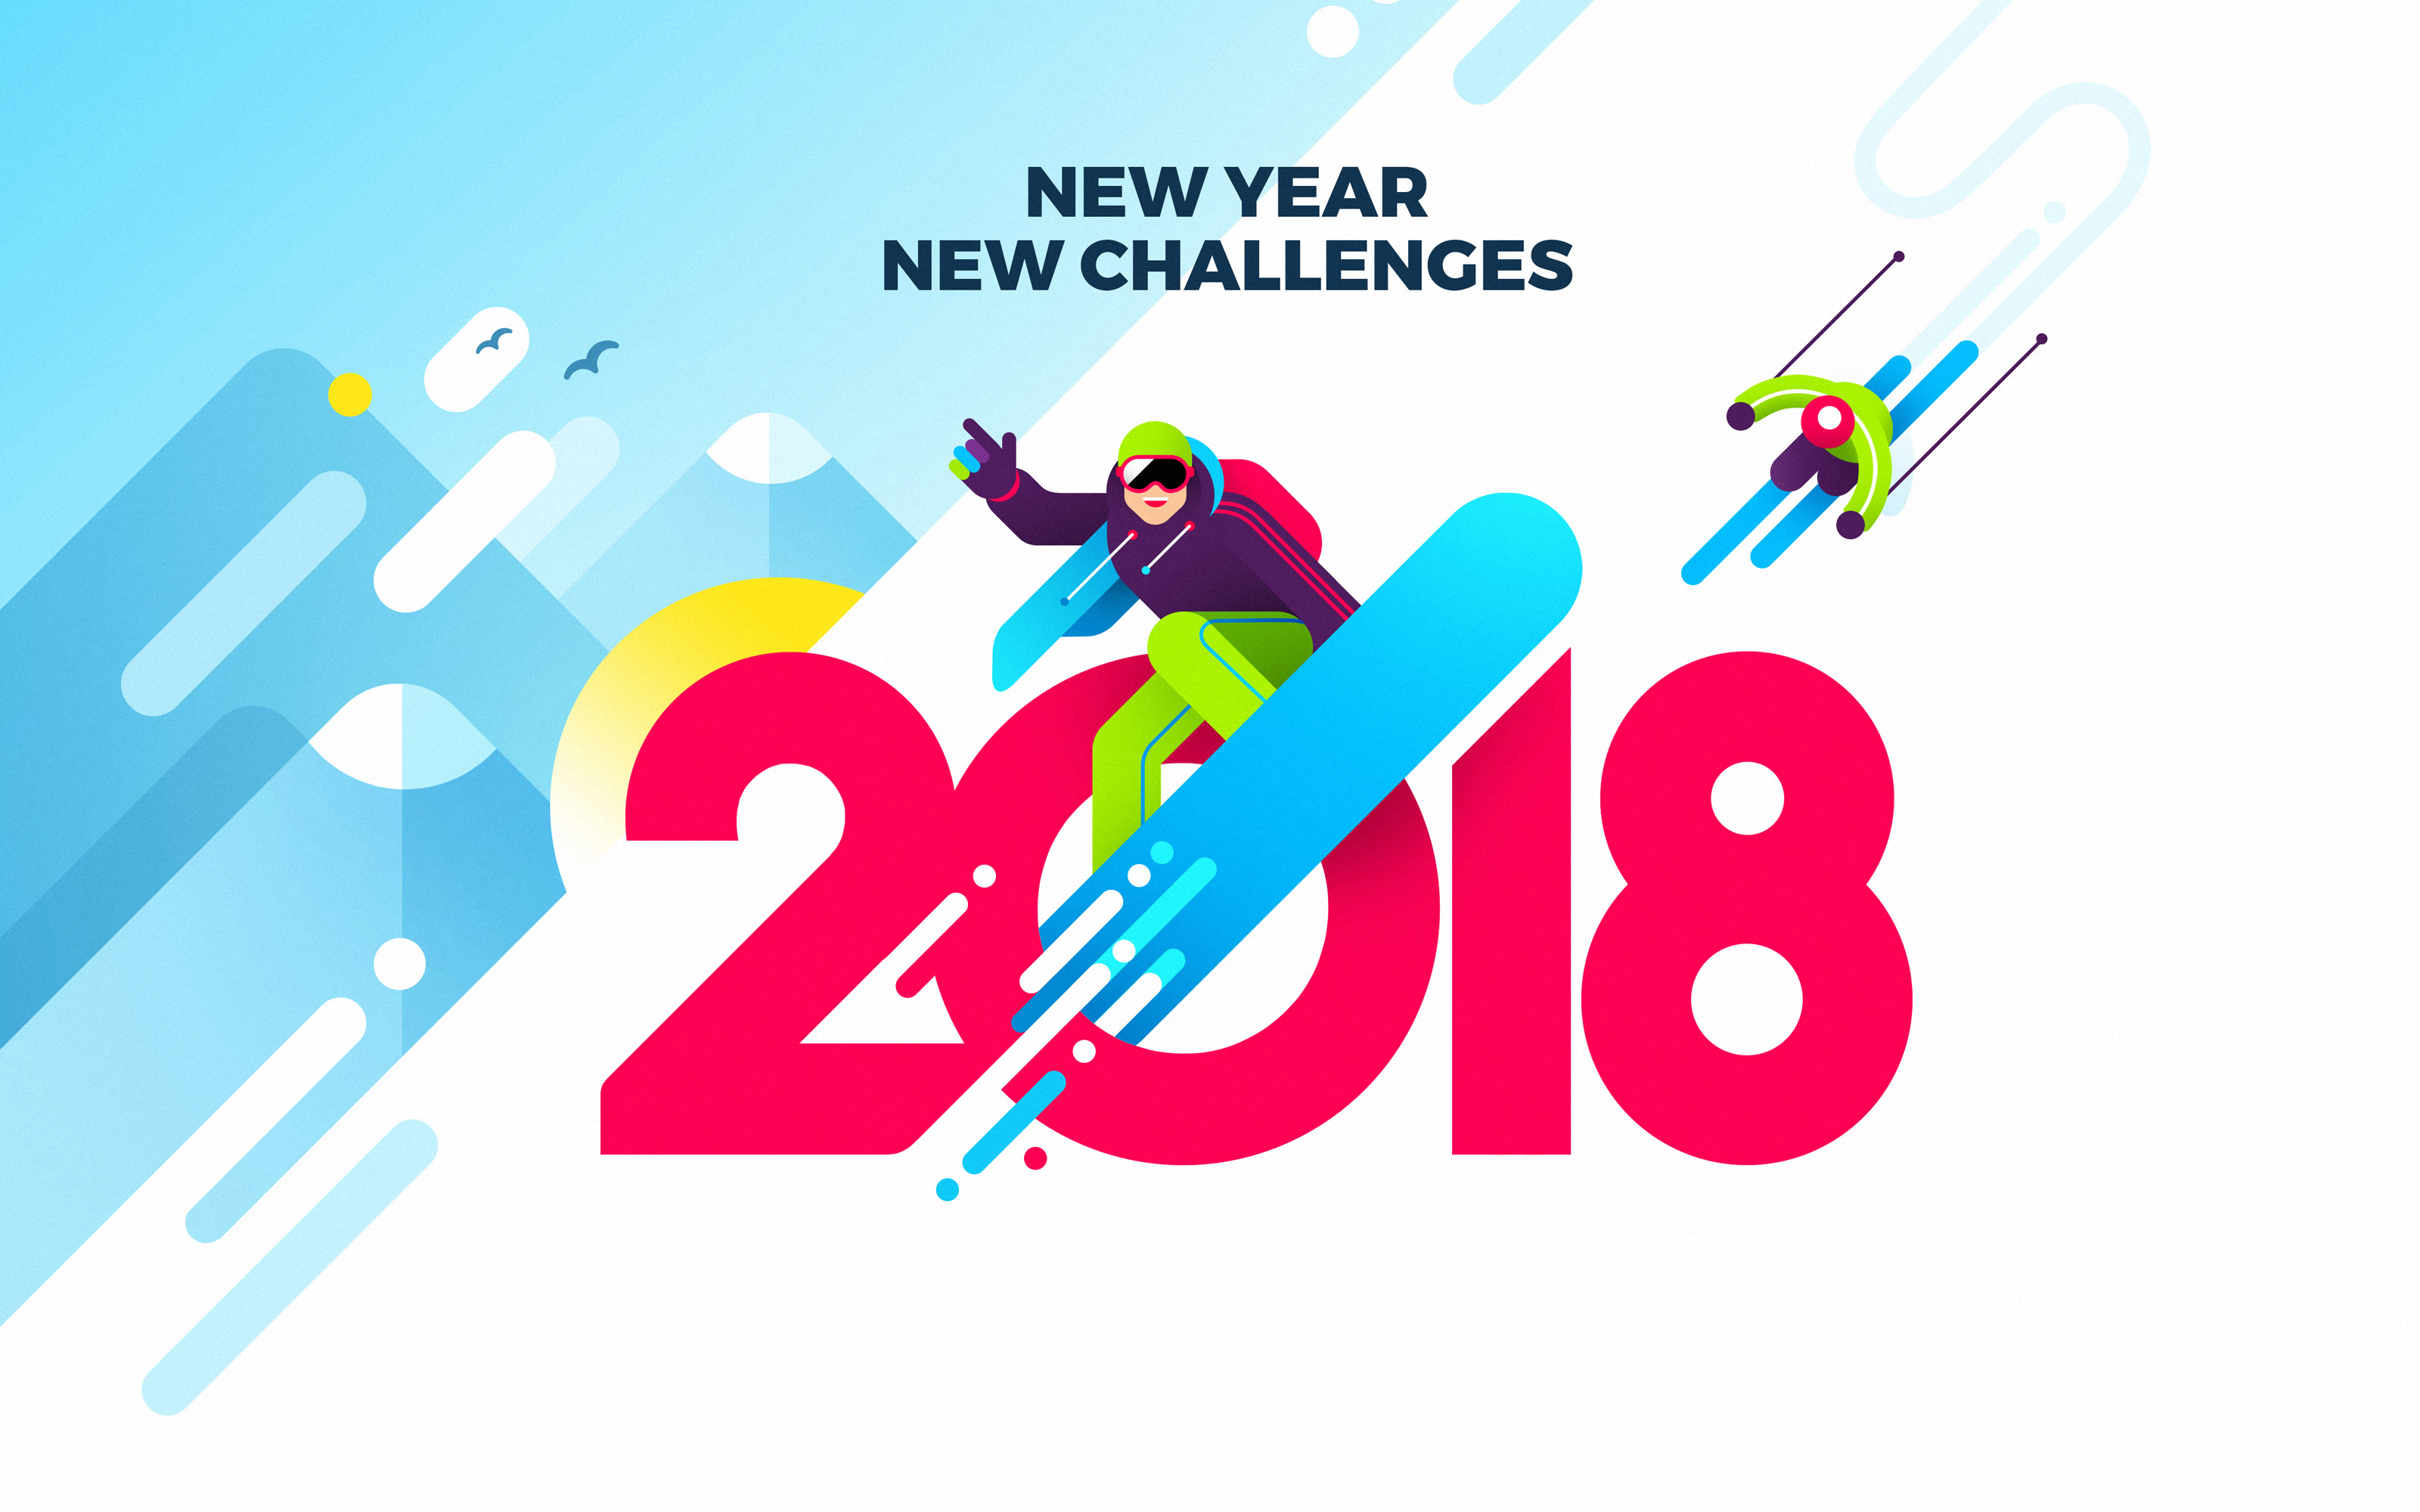 2018 New Year New Challenges Wallpapers